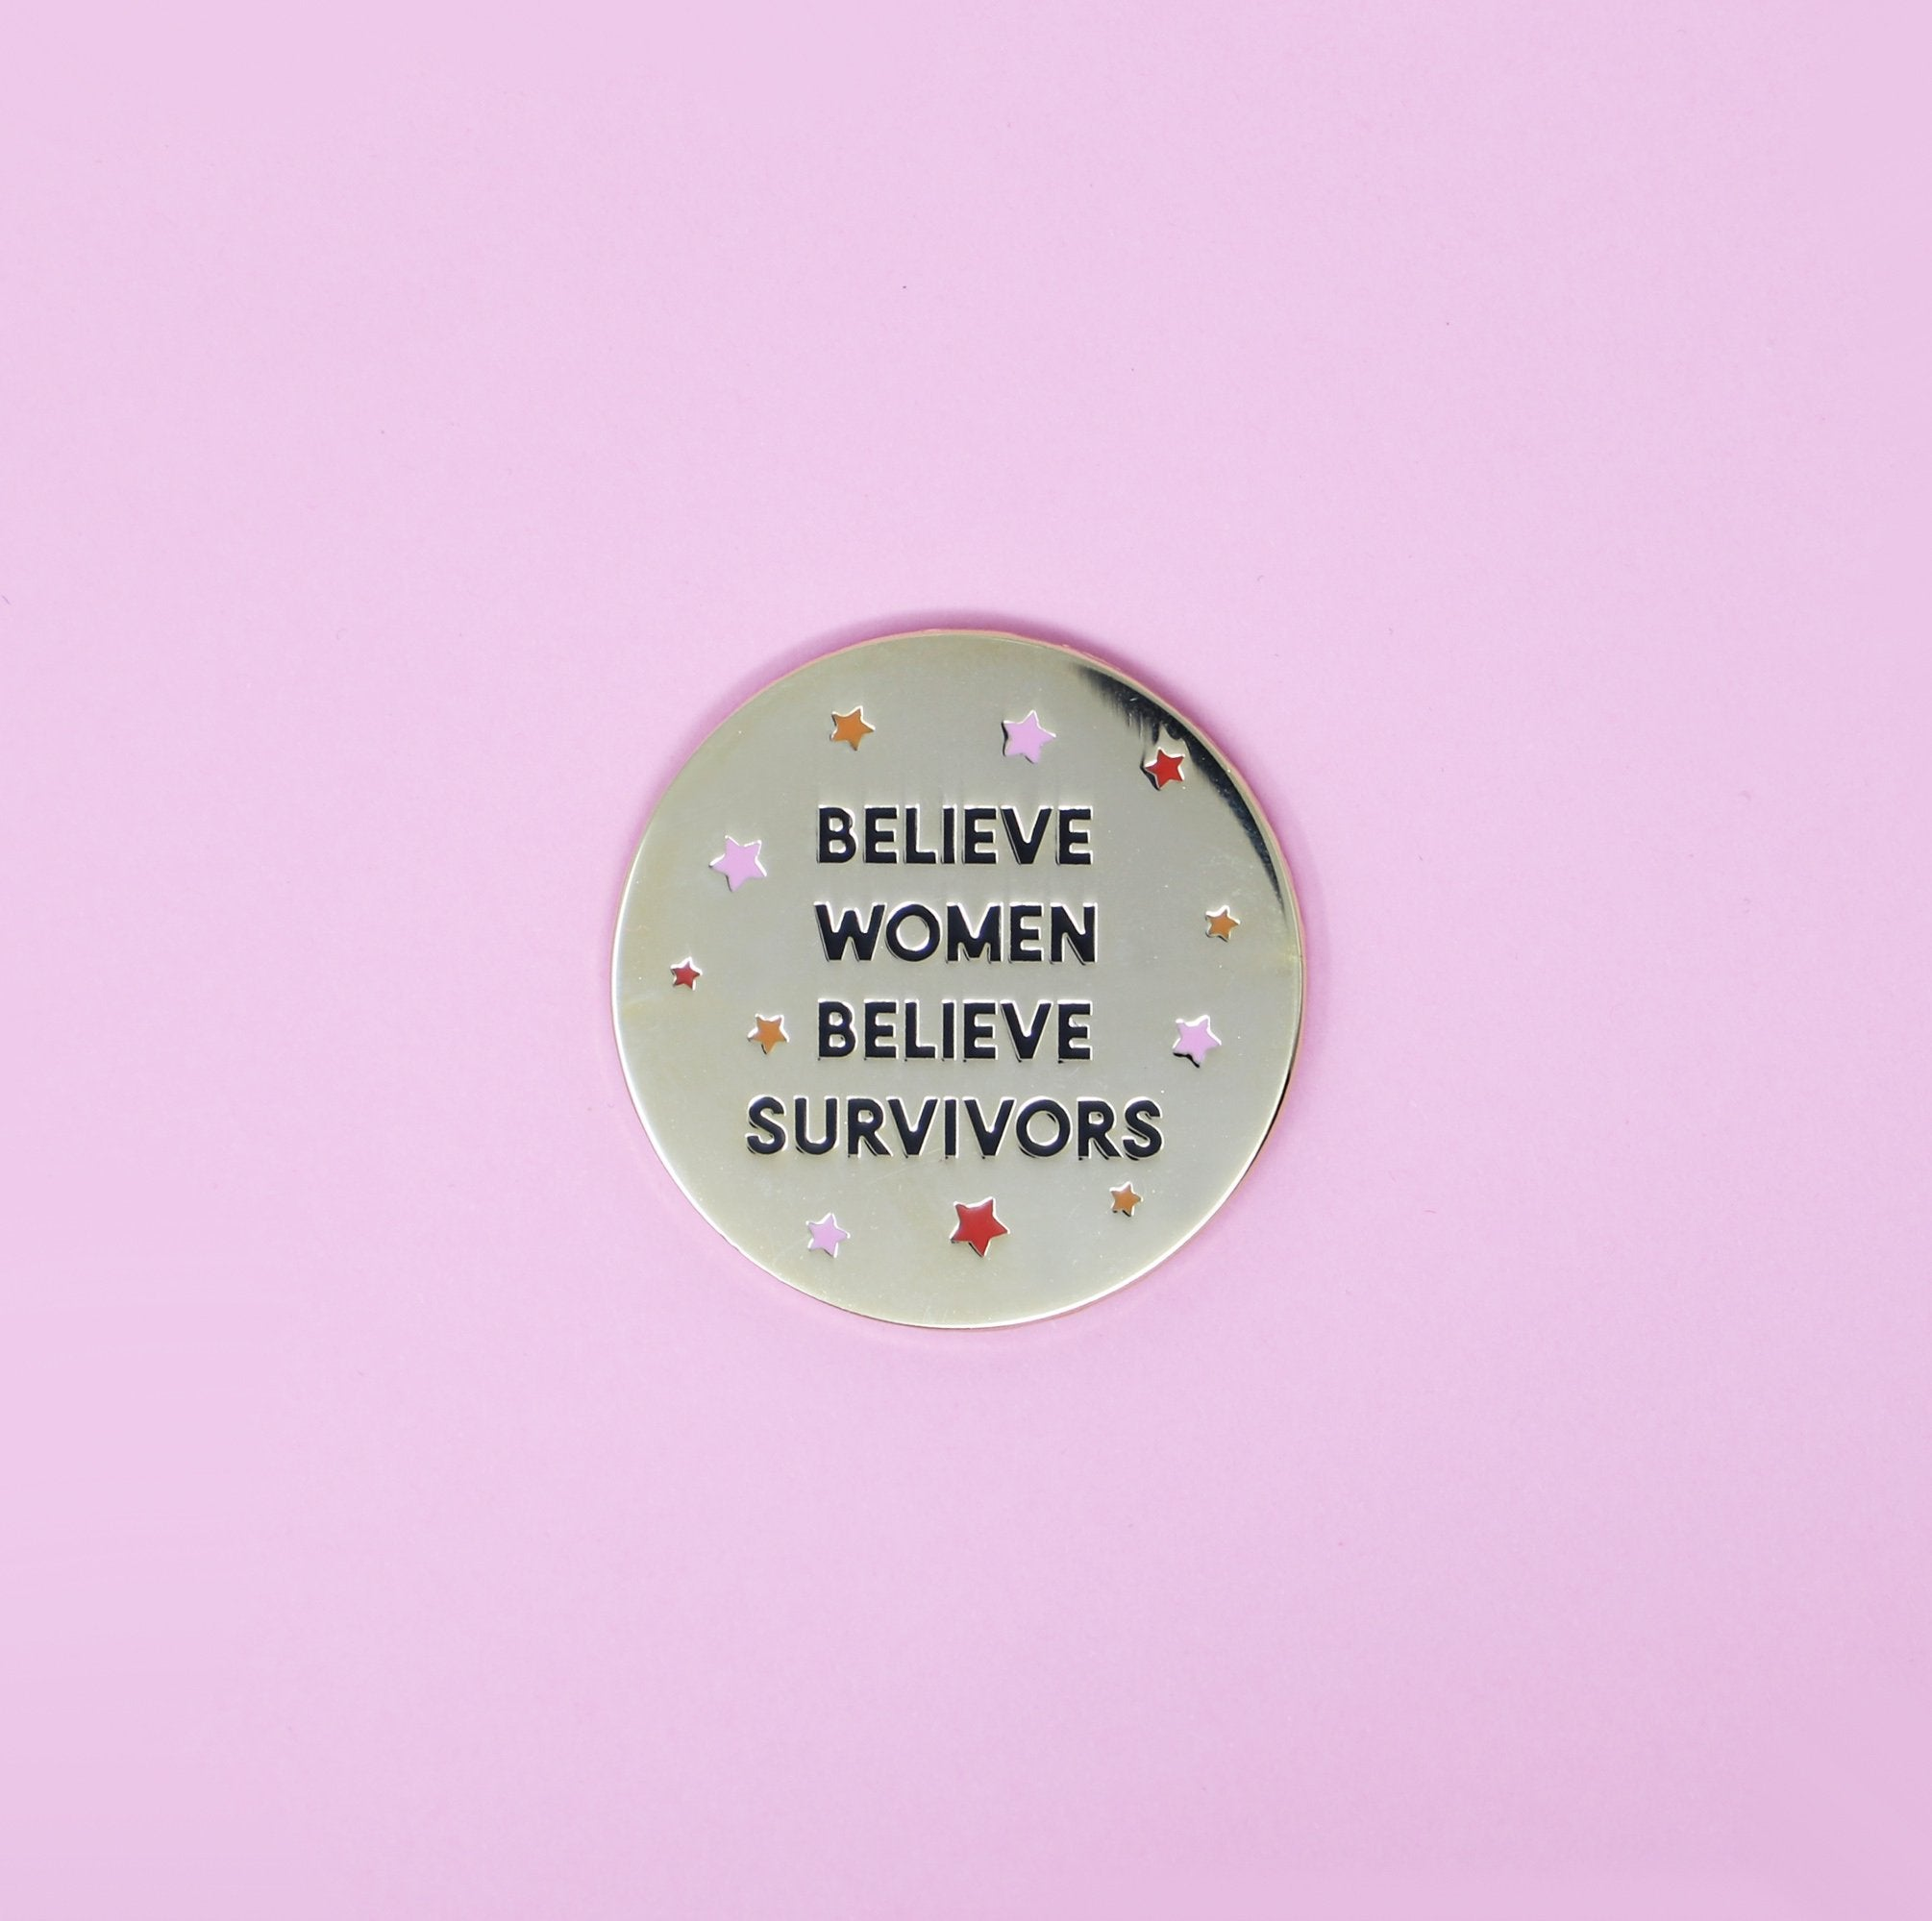 Believe Women Believe Survivors Pin